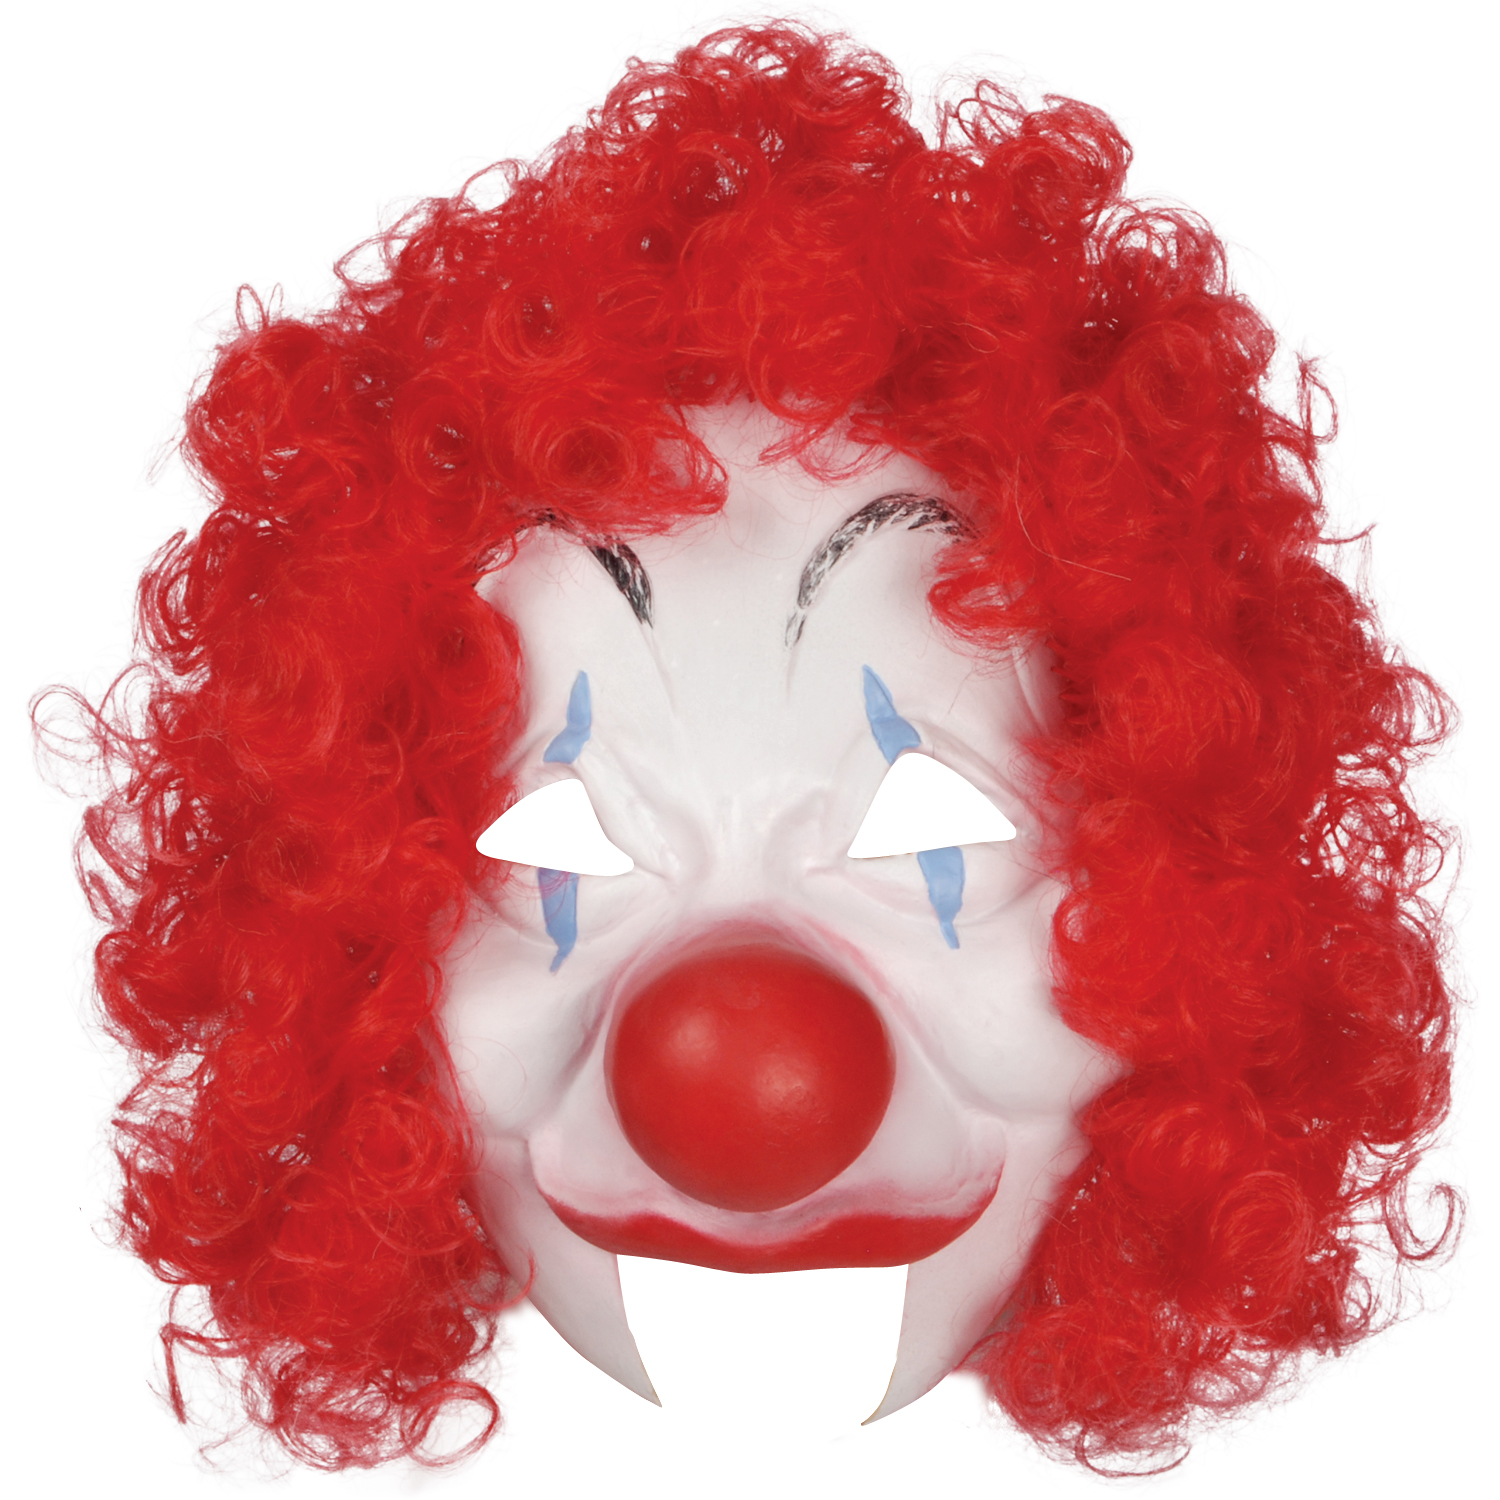 Loftus Halloween Clown Costume Face Mask, White Red, One-Size